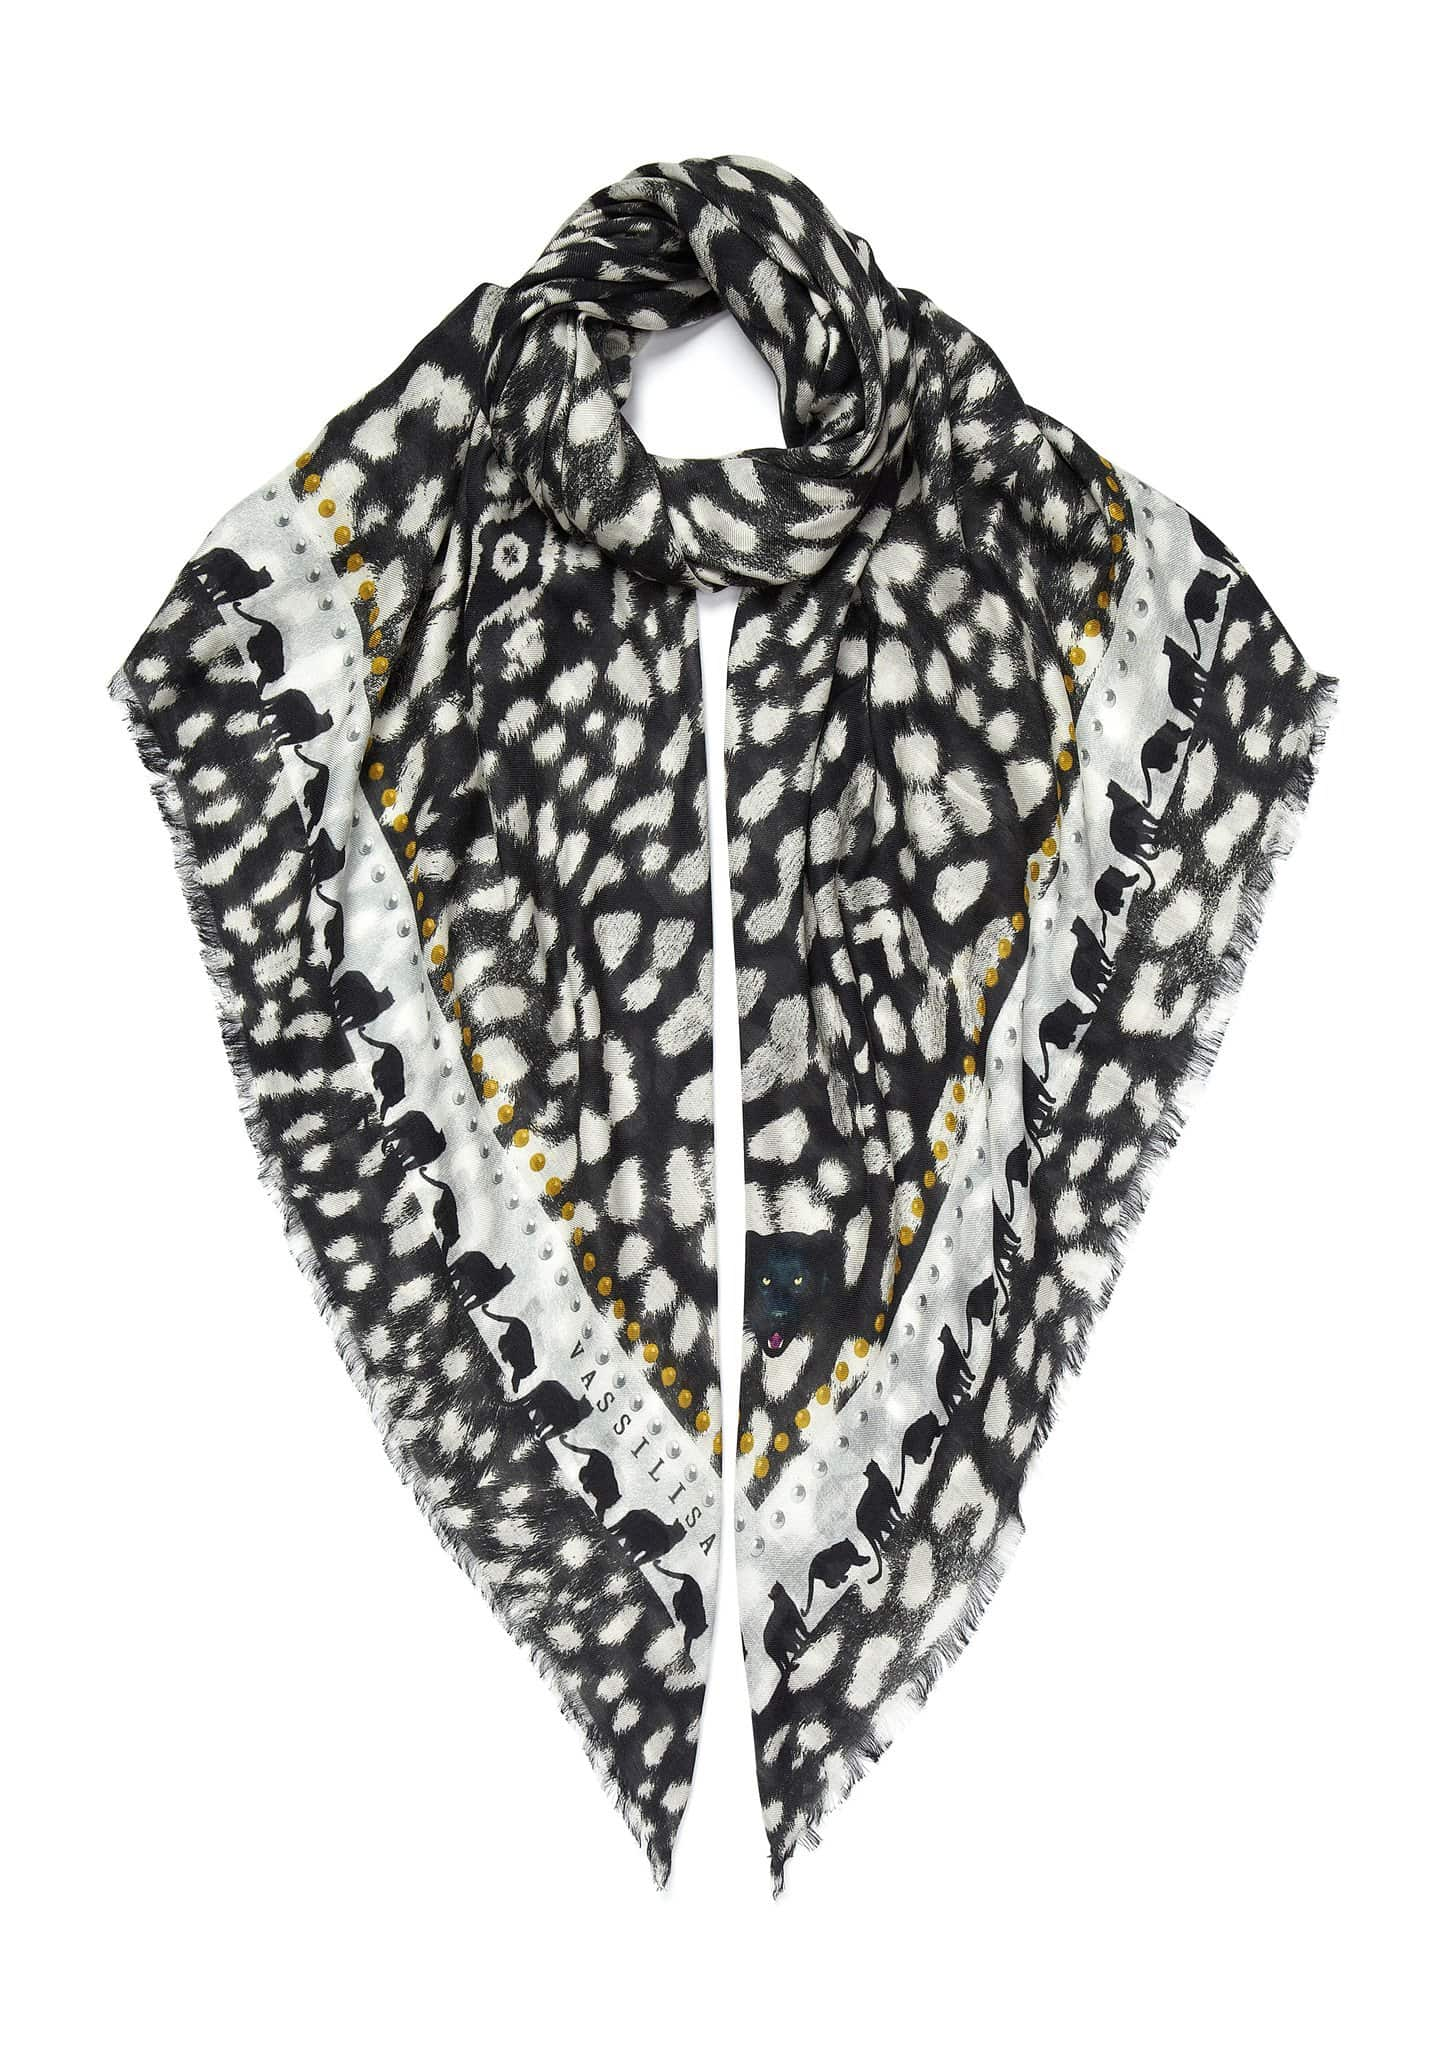 Leopard print scarf black and white